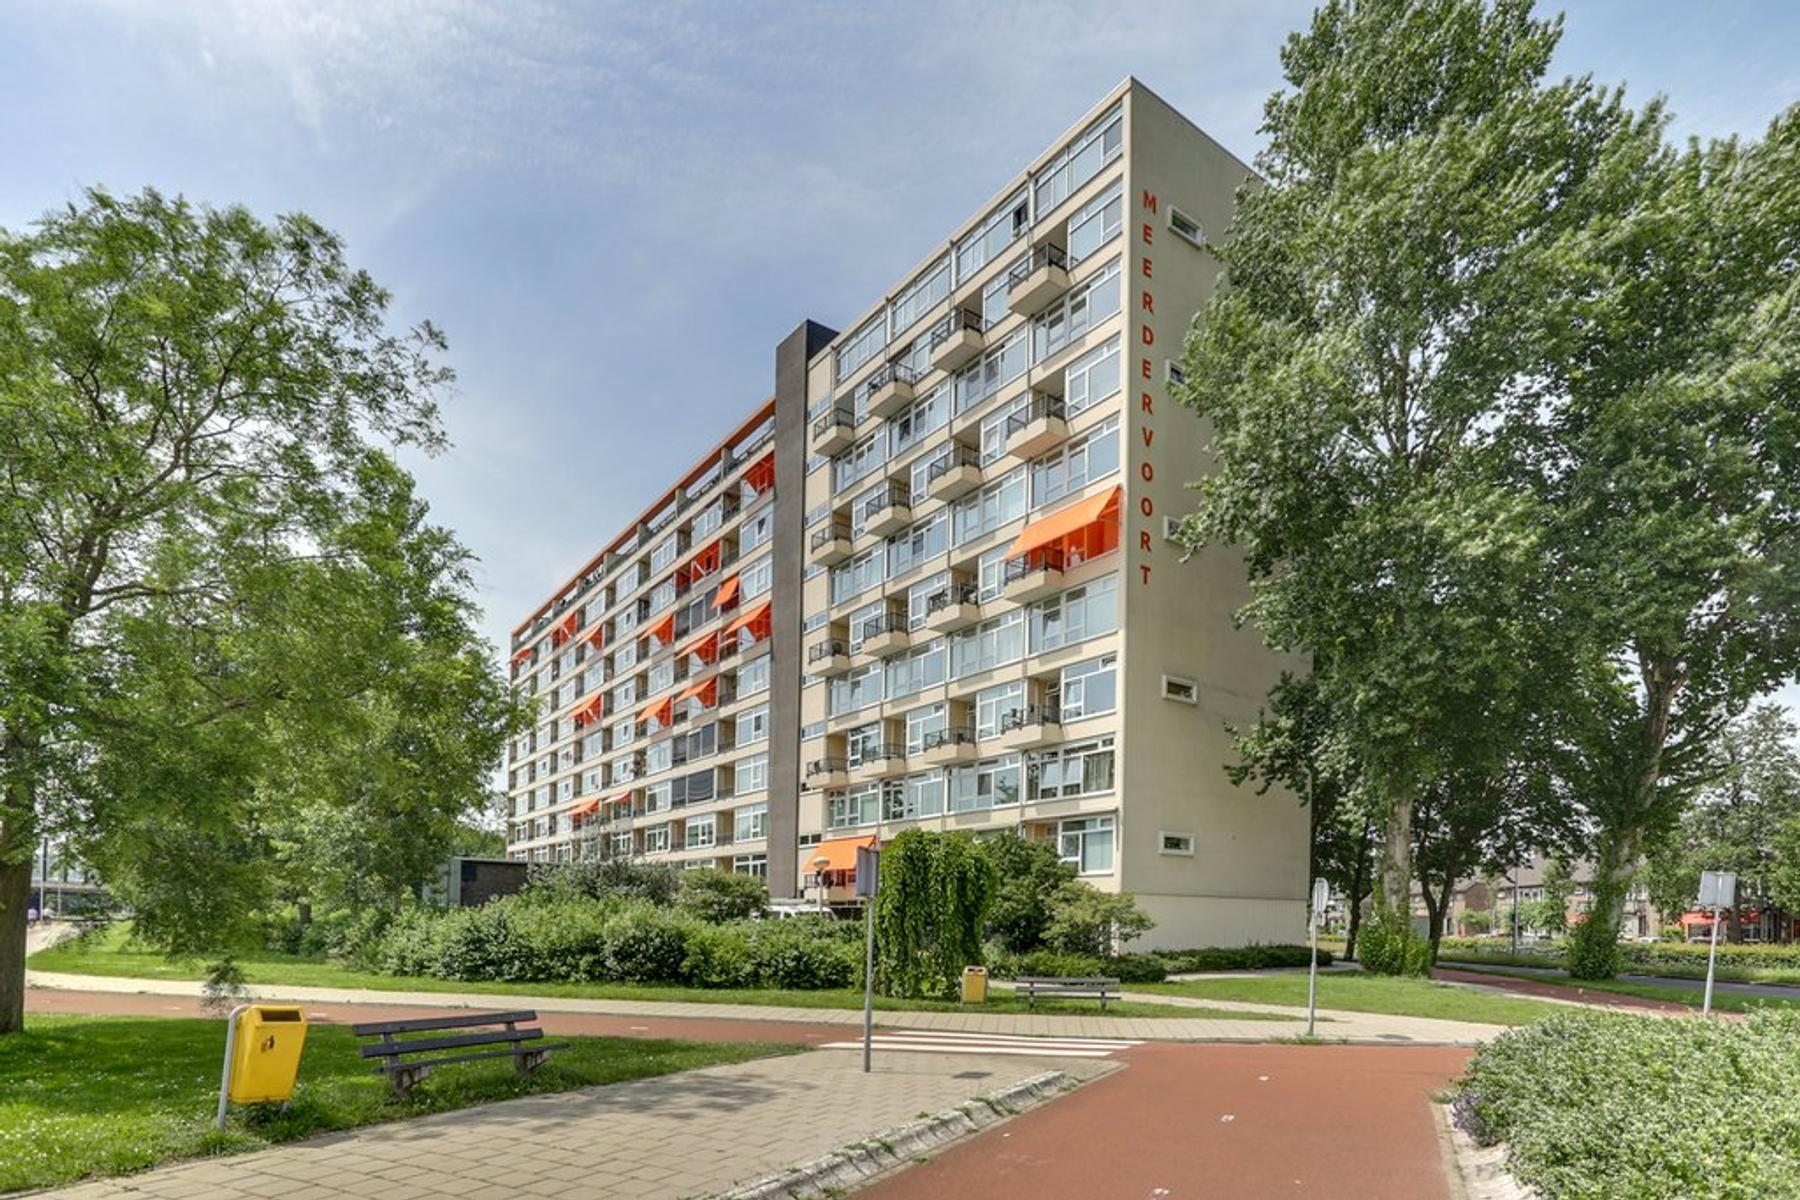 H. Kamerlingh Onnesstraat 135 in Zwijndrecht 3331 EL